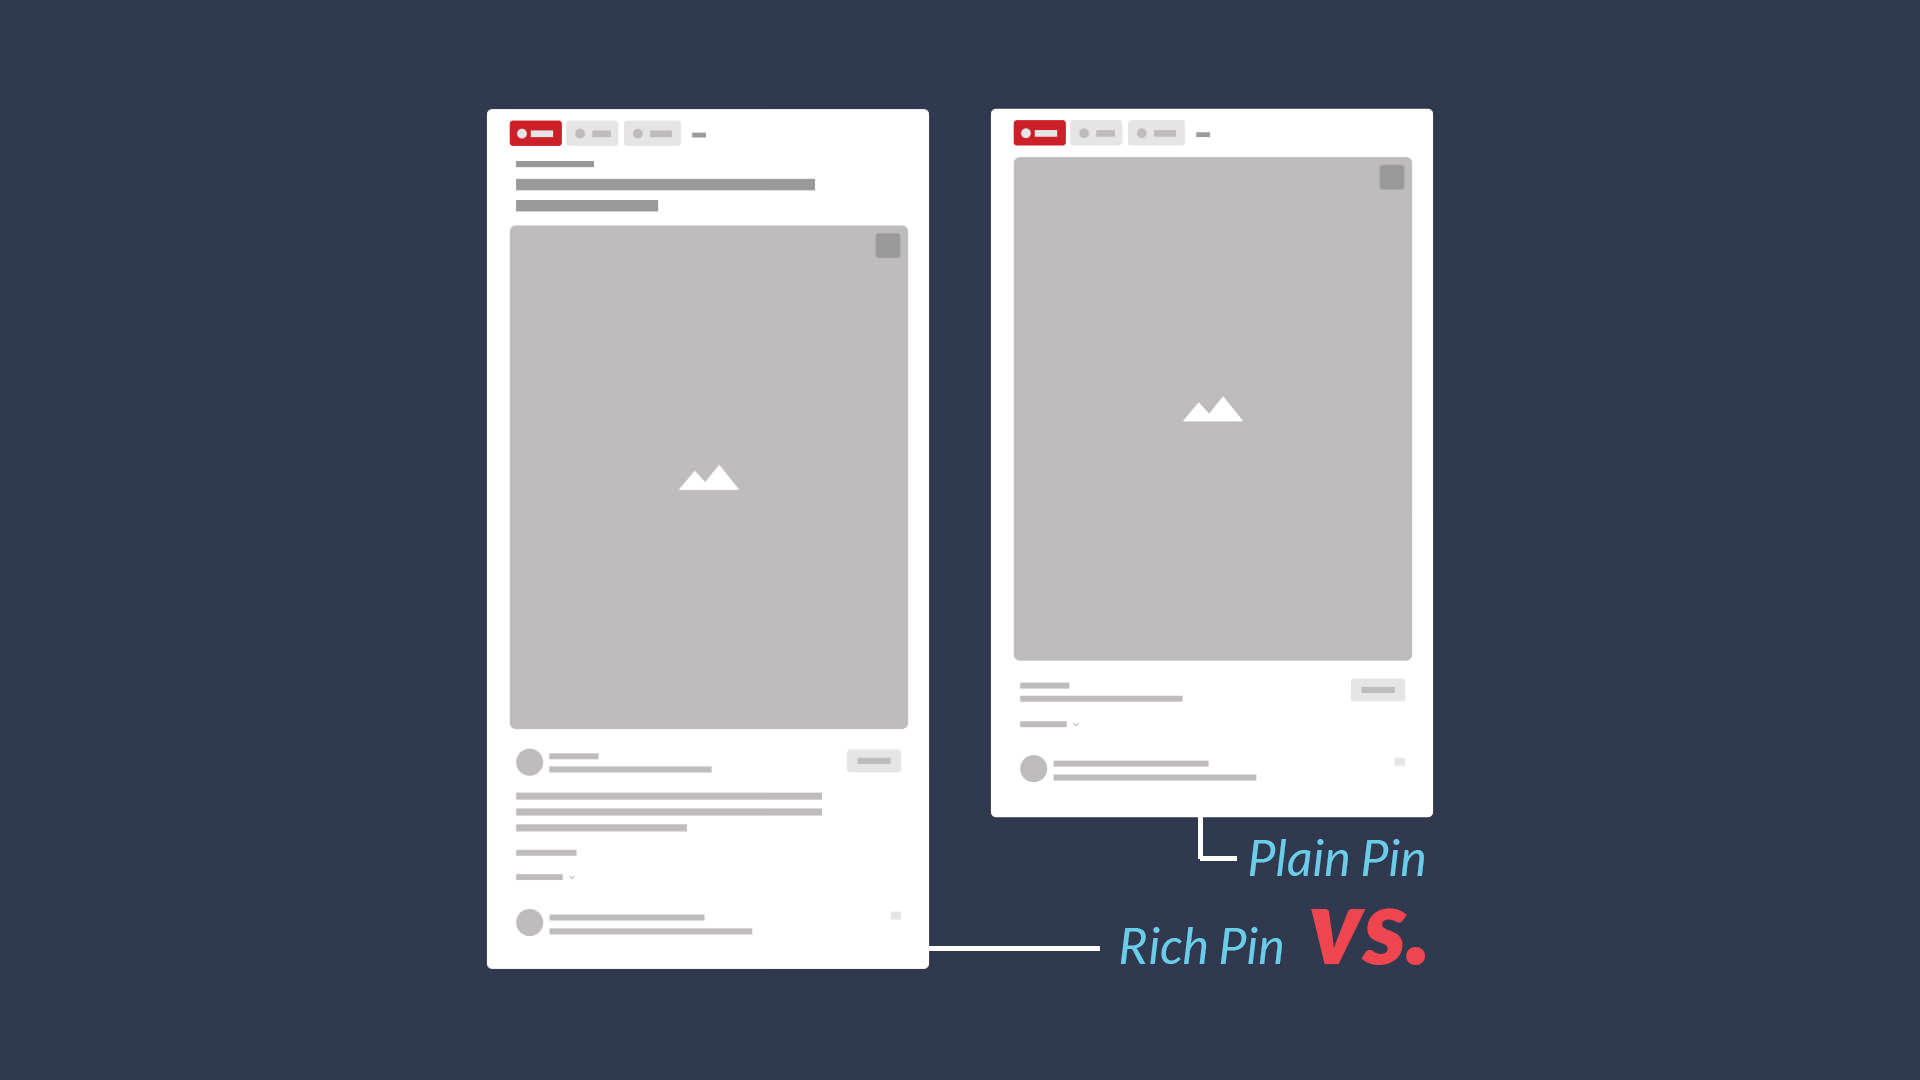 Pinterest Rich Pins vs. Plain Pins